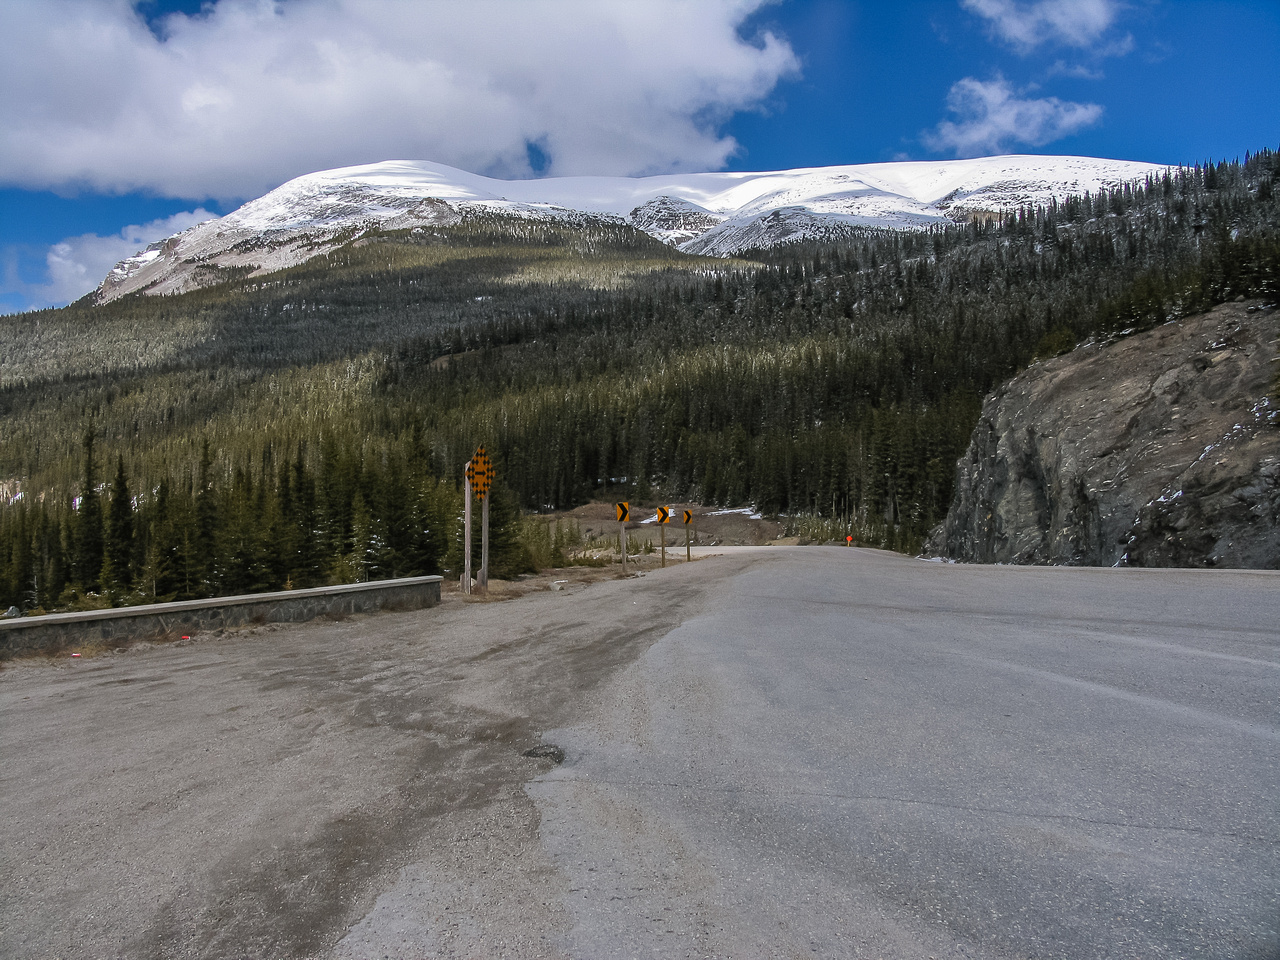 This is what Tangle Ridge looks like from about 1km up the road towards the Icefields Center at a tourist stop.